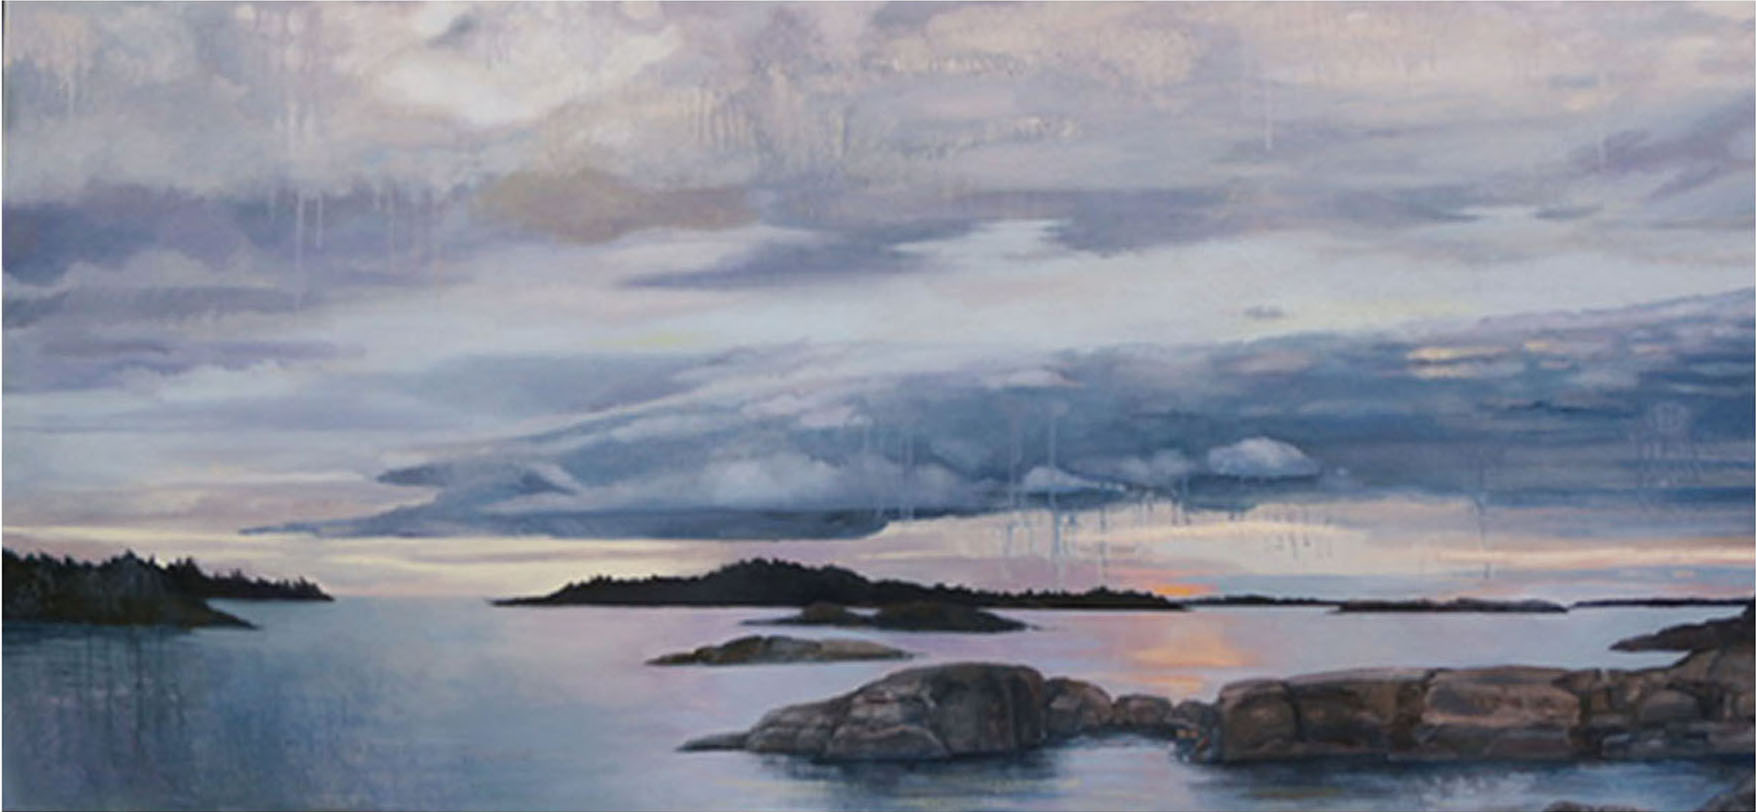 Islands Disappearing, oil and oil stick on canvas, 31 x 67 ½ inches, 2005